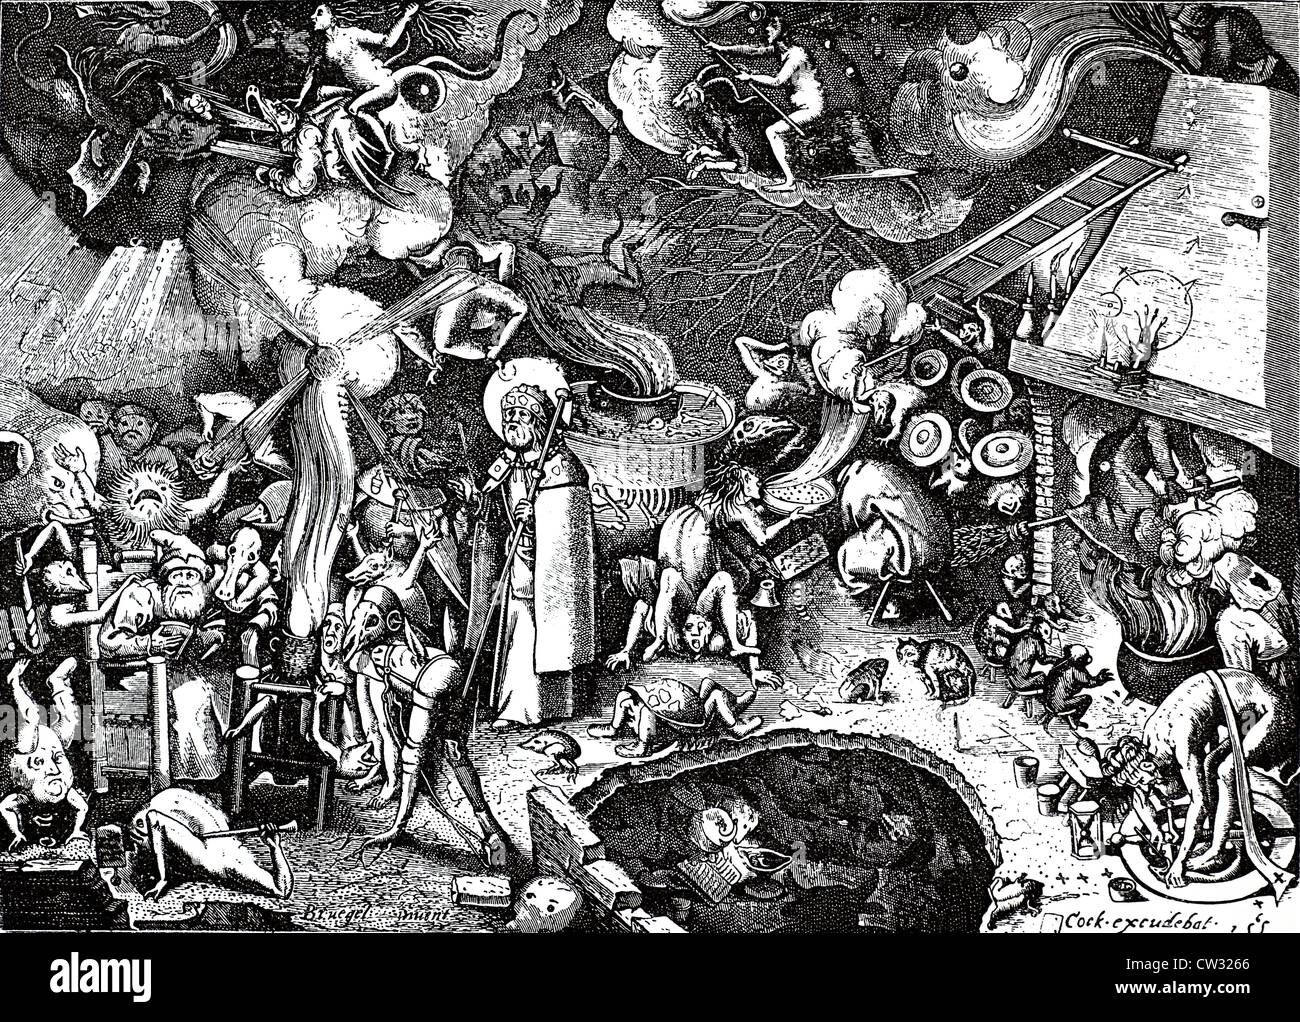 The Witches Sabbath - Stock Image